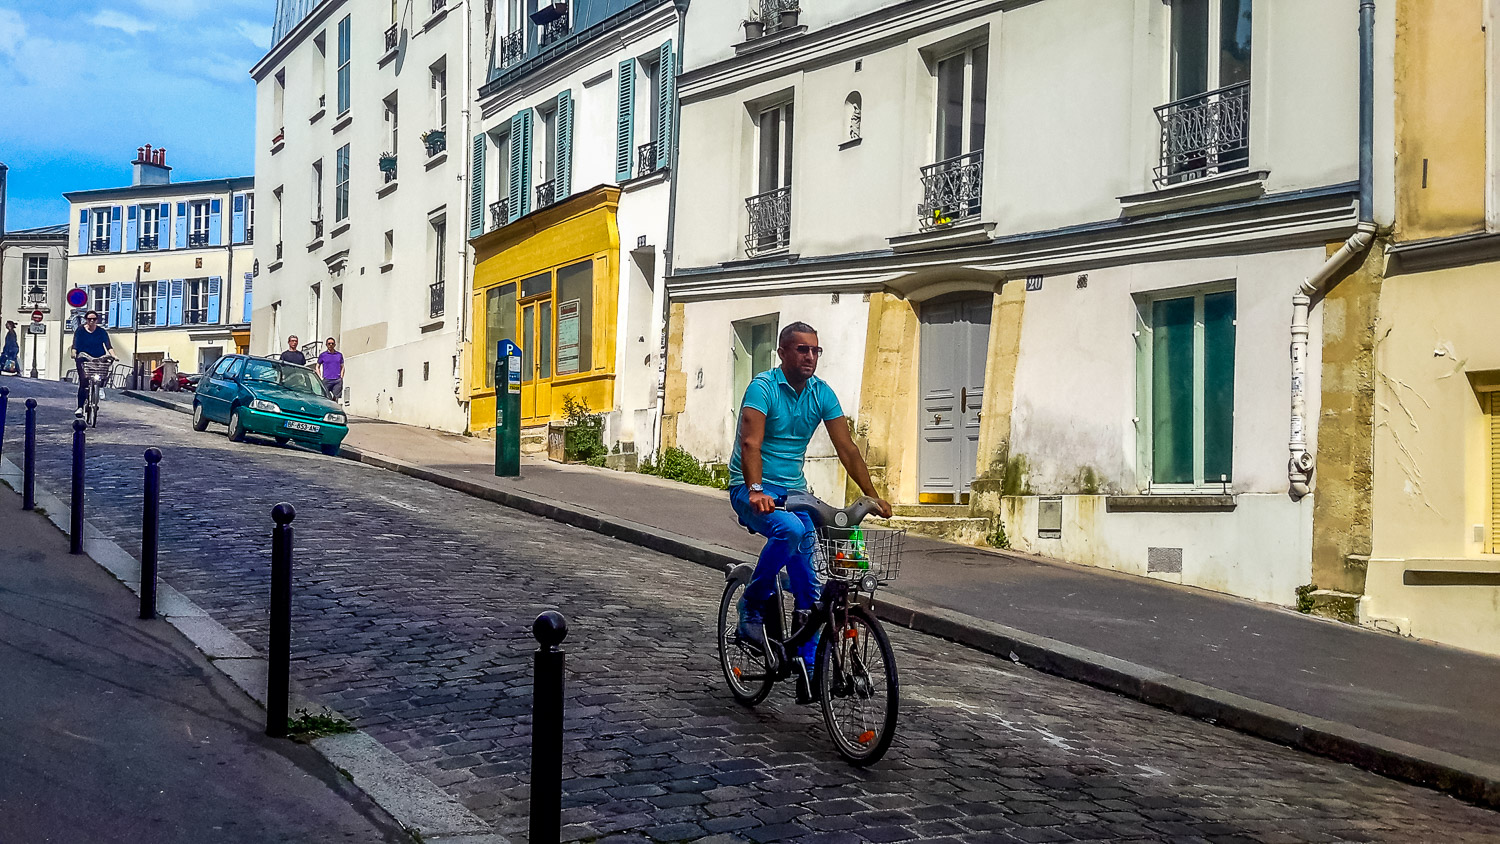 Gorgeous Montmartre Photo Copyright Ruby Boukabou